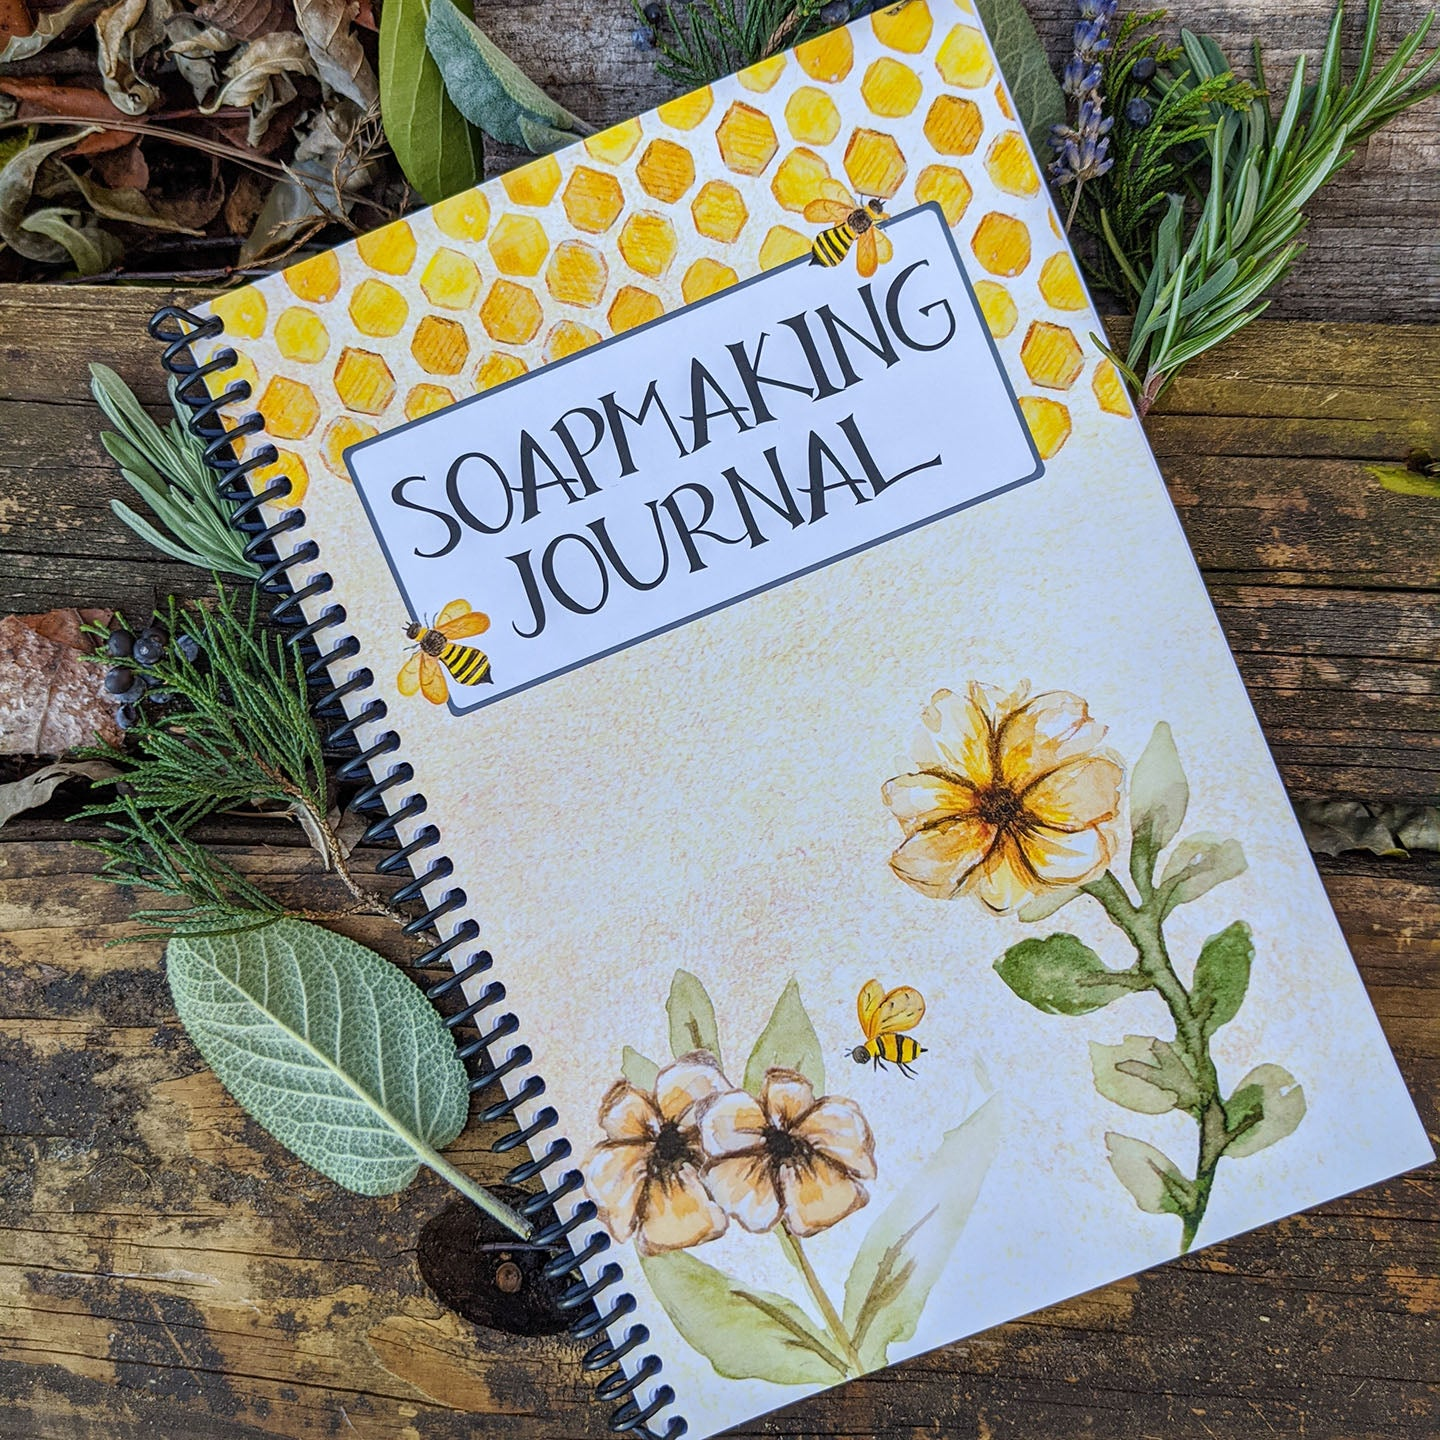 Soapmaking Journal - Honey Bee Cover (Spiral Bound)